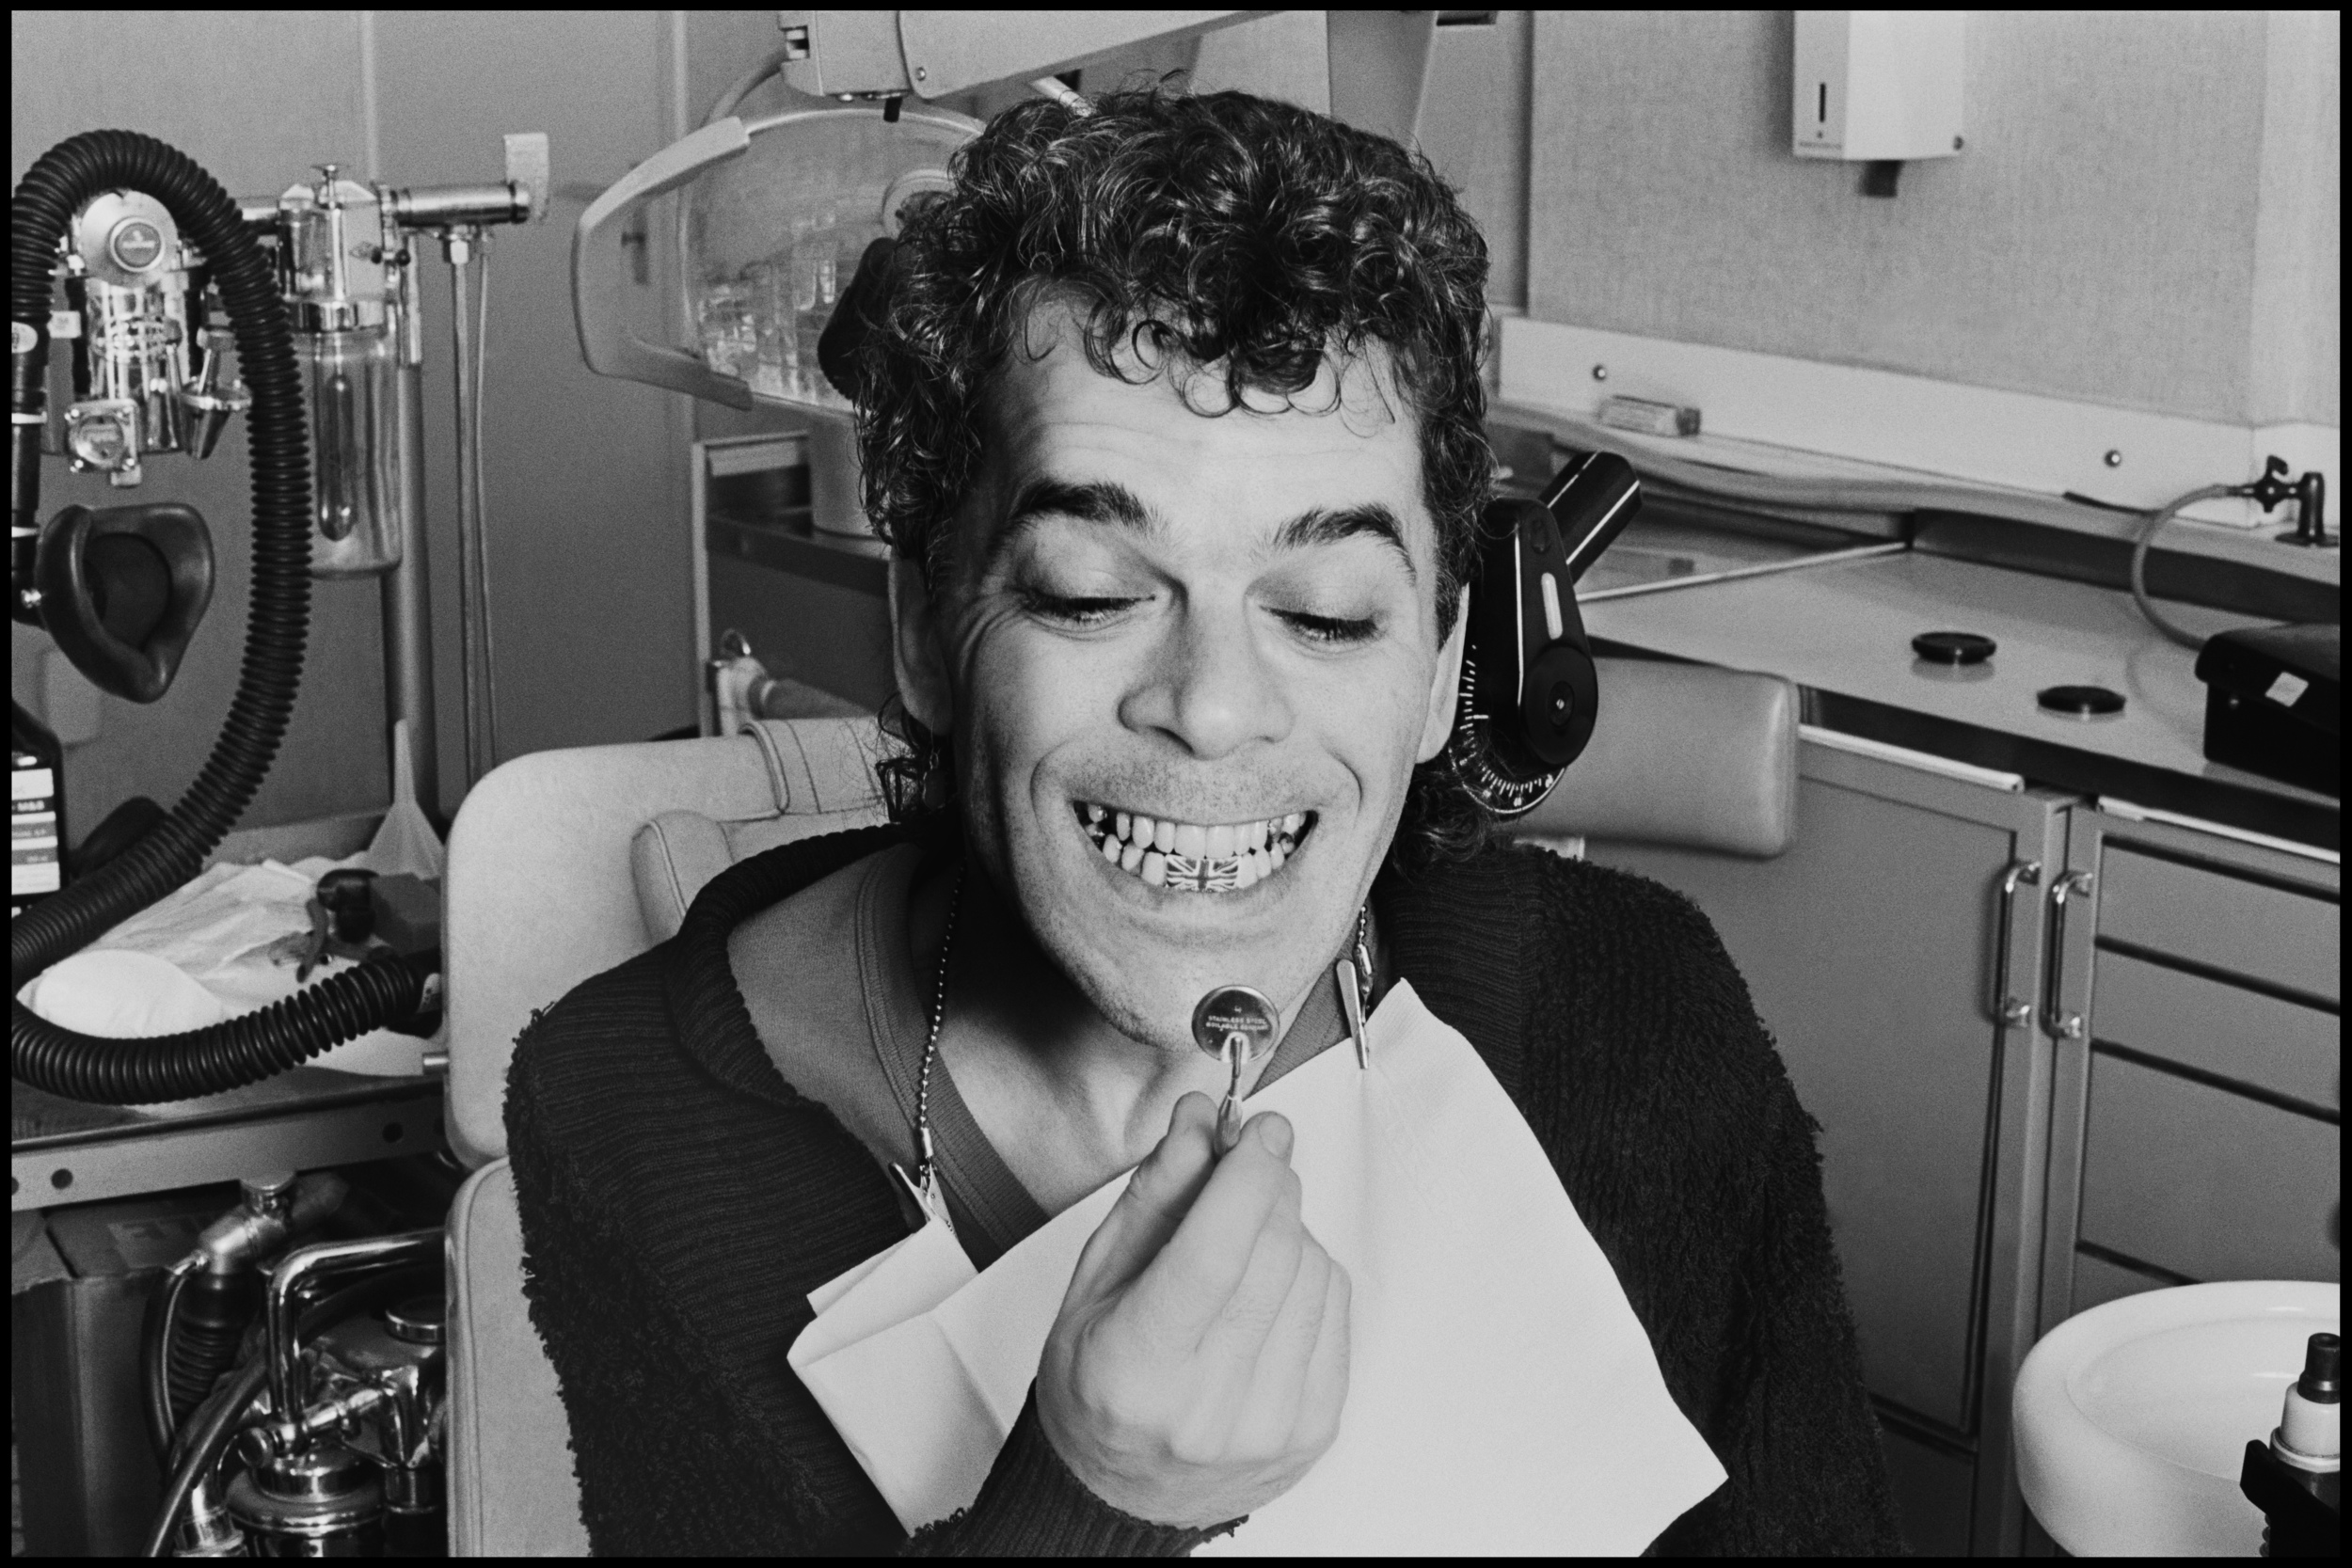 Ian Dury at the Dentist 1978  Whilst others had problems with him, I always found Ian Dury to be fun to photograph and his enthusiasm made the job easy, no matter what else might have been happening he always switched into photo mode for me and we did some memorable shoots together.  In 1978 the Stiff Tour had made Ian pretty successful, the first album had sold really well and his management set their sights on America.  But before he went there, and paid for by the royalties from Hit Me With Your Rhythm Stick, he decided to get his teeth fixed. Like fellow Punks, Lydon and Strummer, Ian's teeth were in terrible condition and he underwent serious dental work.  Due to the pressure of gigging he had this done in stages and the Dentist dealt with his lower jaw first, this involved putting a temporary bridge in place and while chatting to the Dentist Ian came up with a unique idea, just in time for his first trip to the Americas.  He had a Union Jack painted on this bridge so that when he gave those septics (septic tank = yank) a big toothy grin they would see the flag of his beloved Britain.  Hearing about this it seemed a natural thing to take photos of, and so I went down to Harley Street with my lights and set up in the Dentist's office. Ian sat in the chair and mugged away for the camera, it's one of my favourite sets of photos of him and the NME liked it enough to use it as a cover.